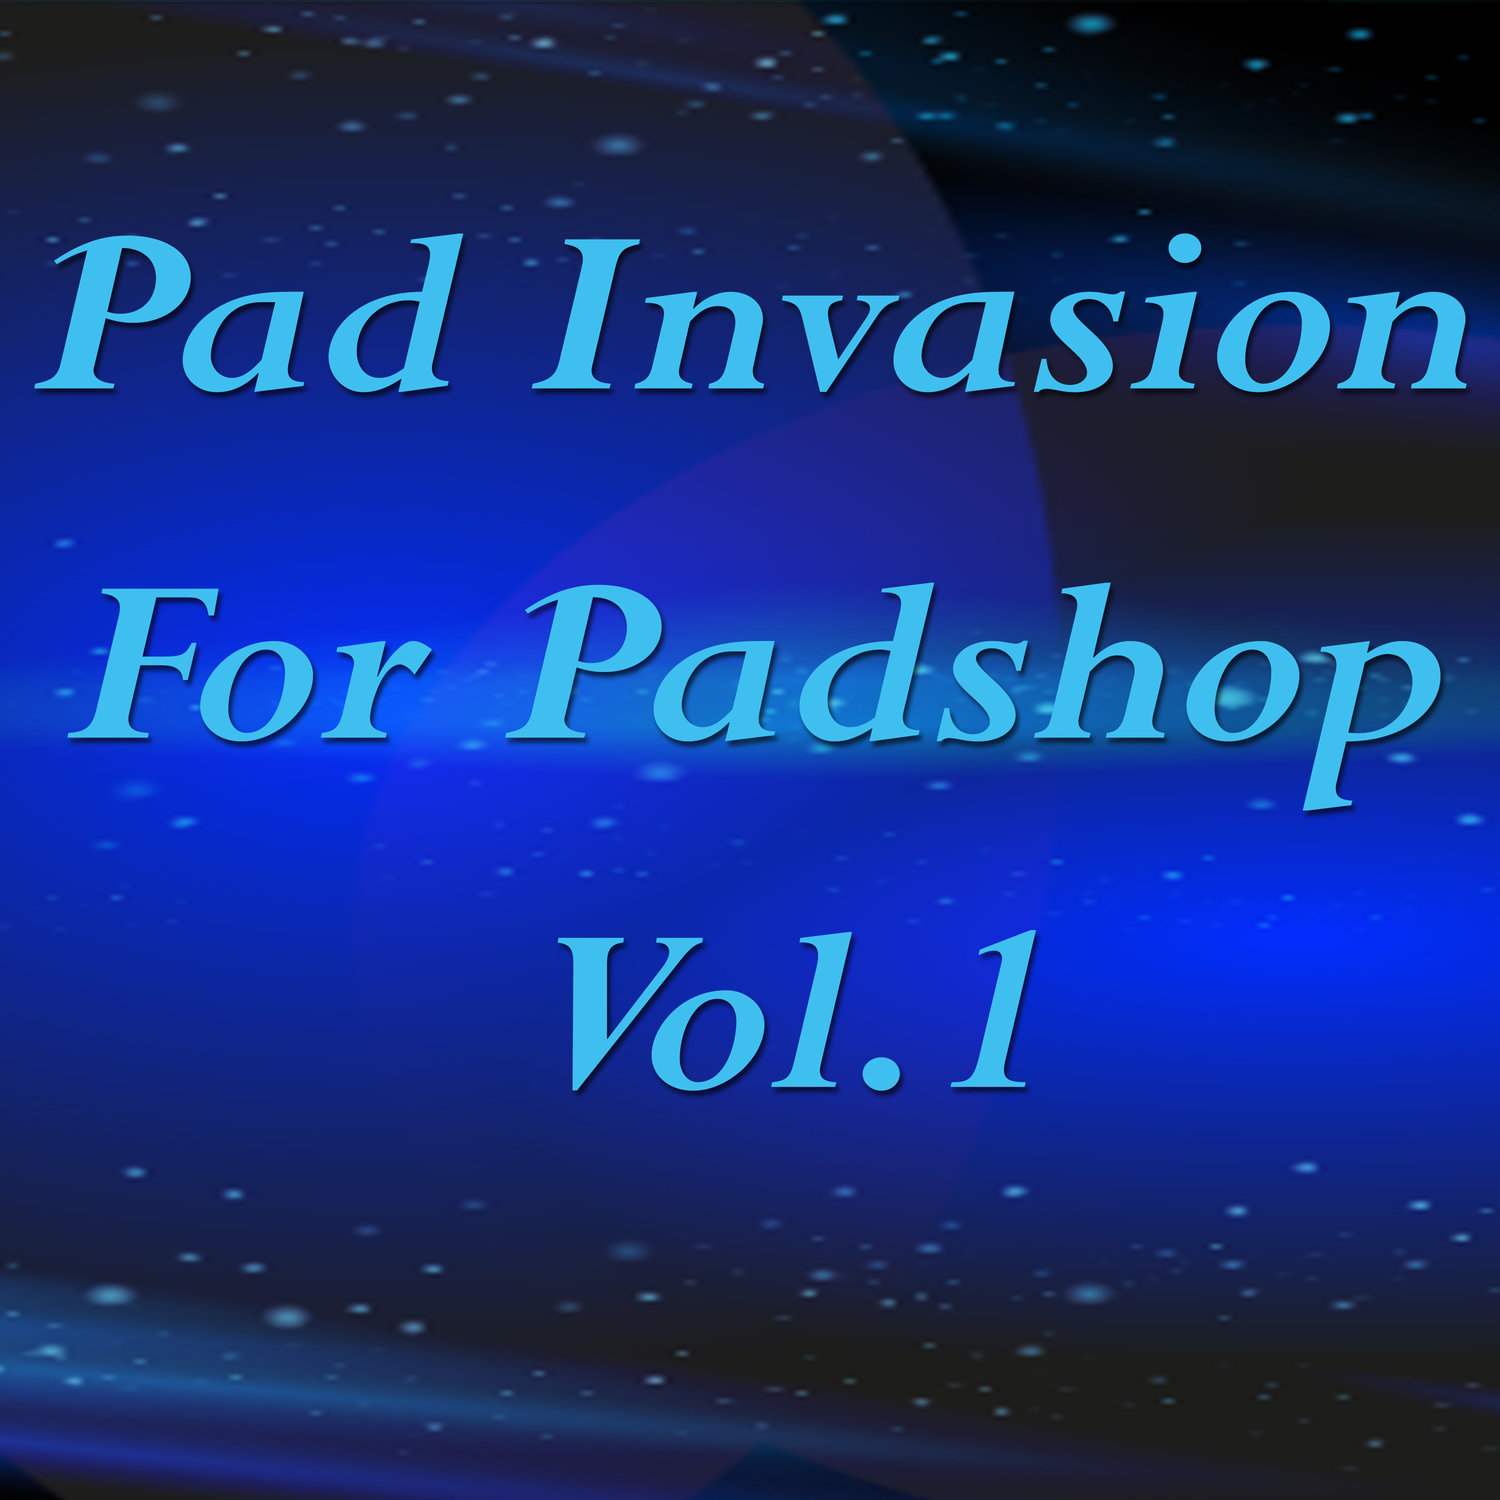 Pad Invasion For Padshop Vol. 1